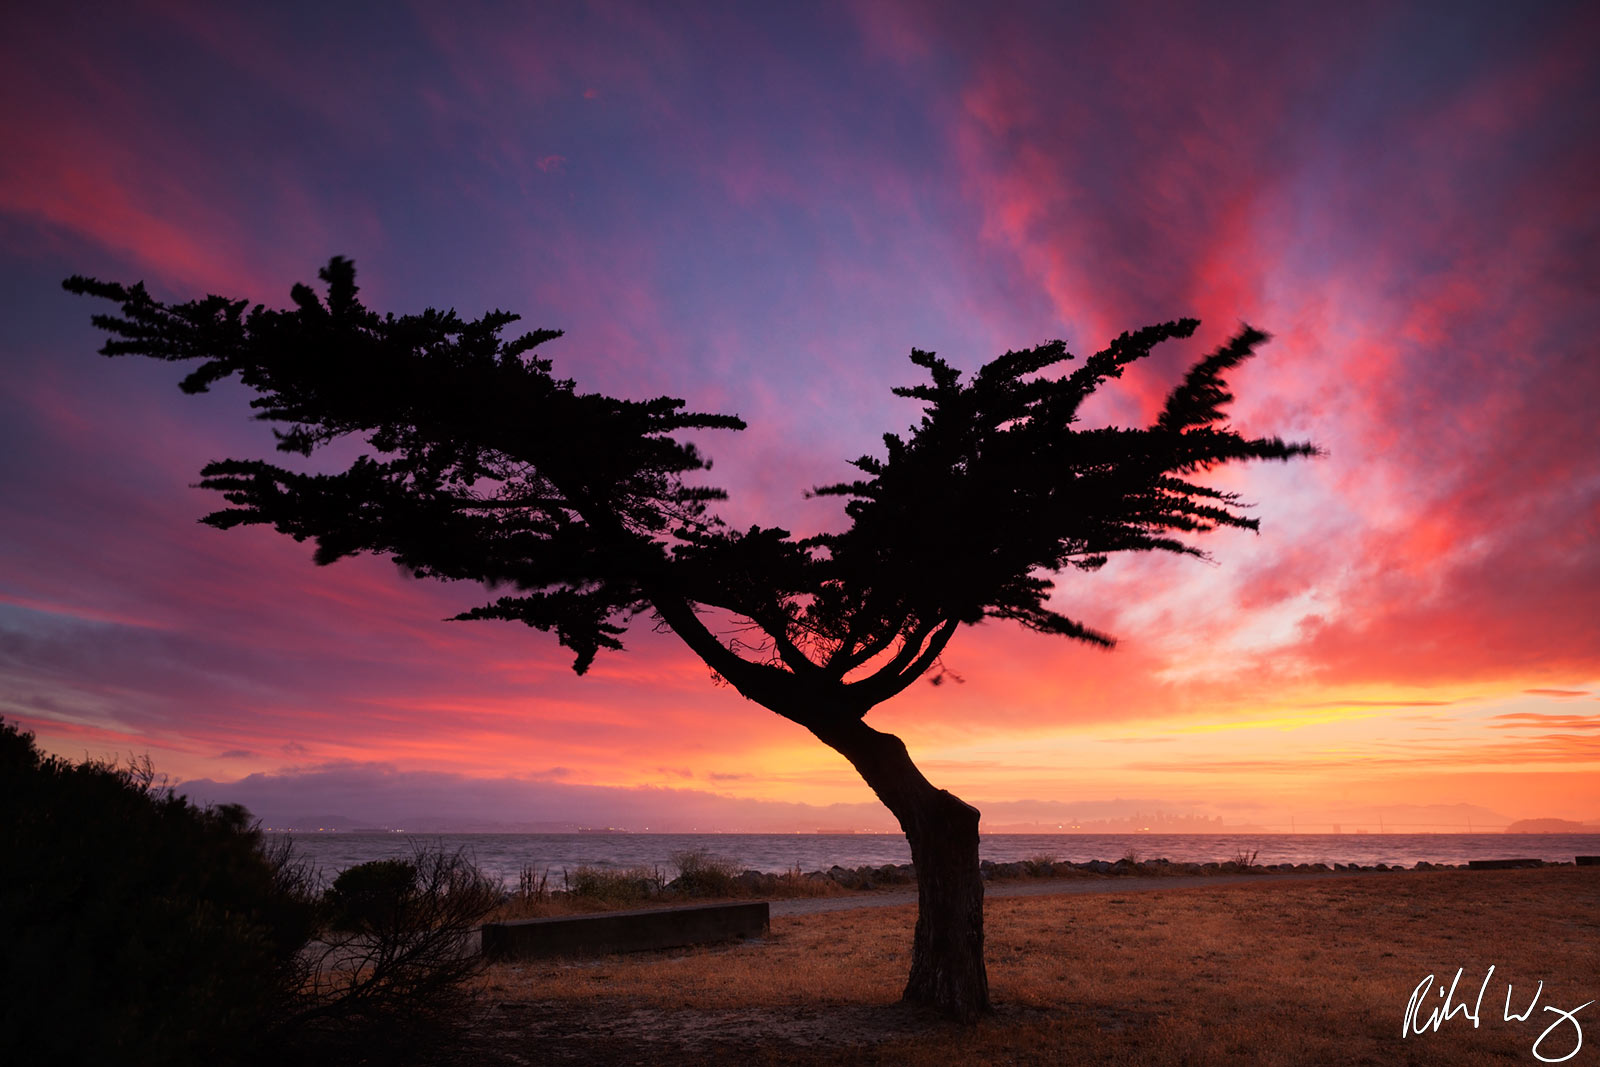 lonesome cypress tree, alameda, san francisco bay area, east bay, photo, photo